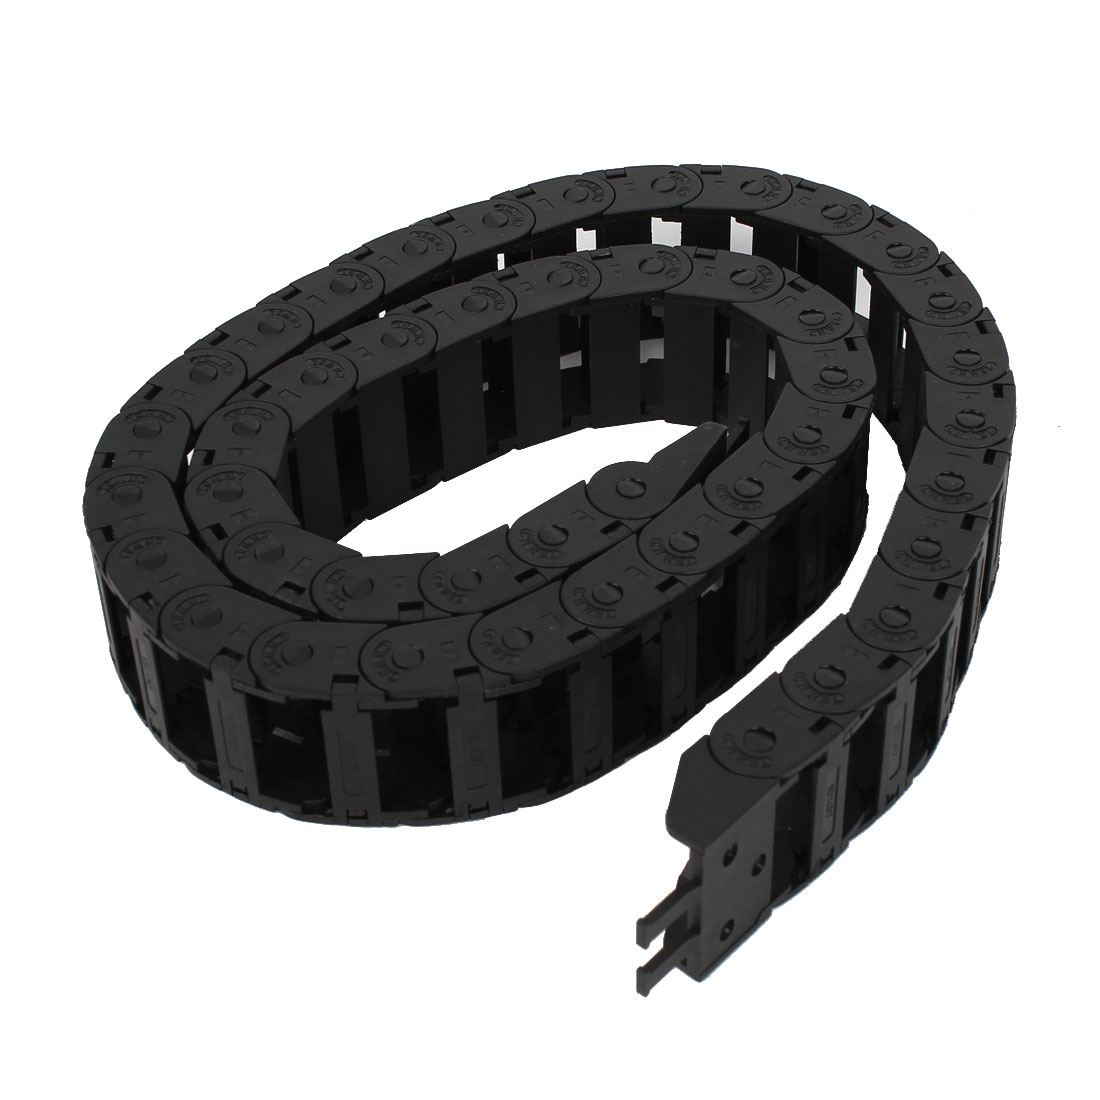 CNC Machine Black Plastic 15mmx30mm R7mm Cable Drag Chain 3.3Ft Long